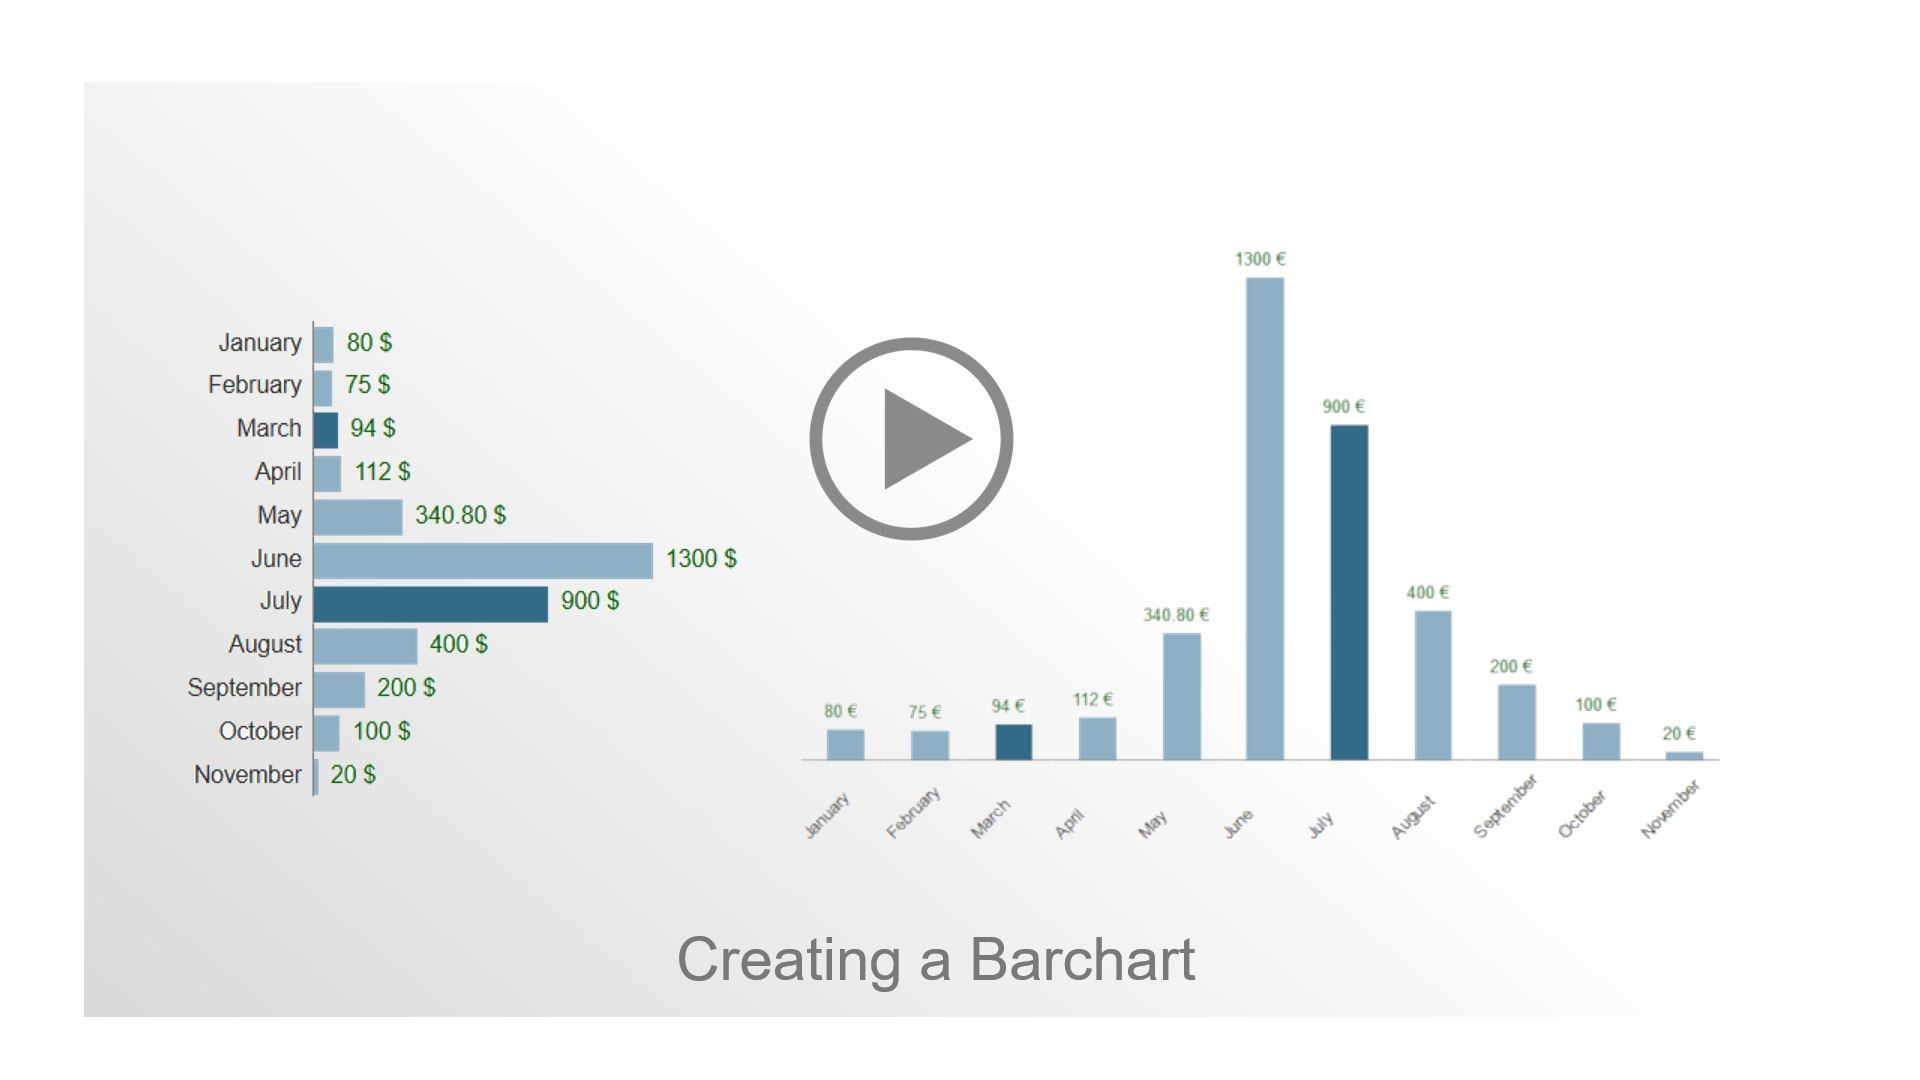 Creating a Barchart in Axure, Tutorial